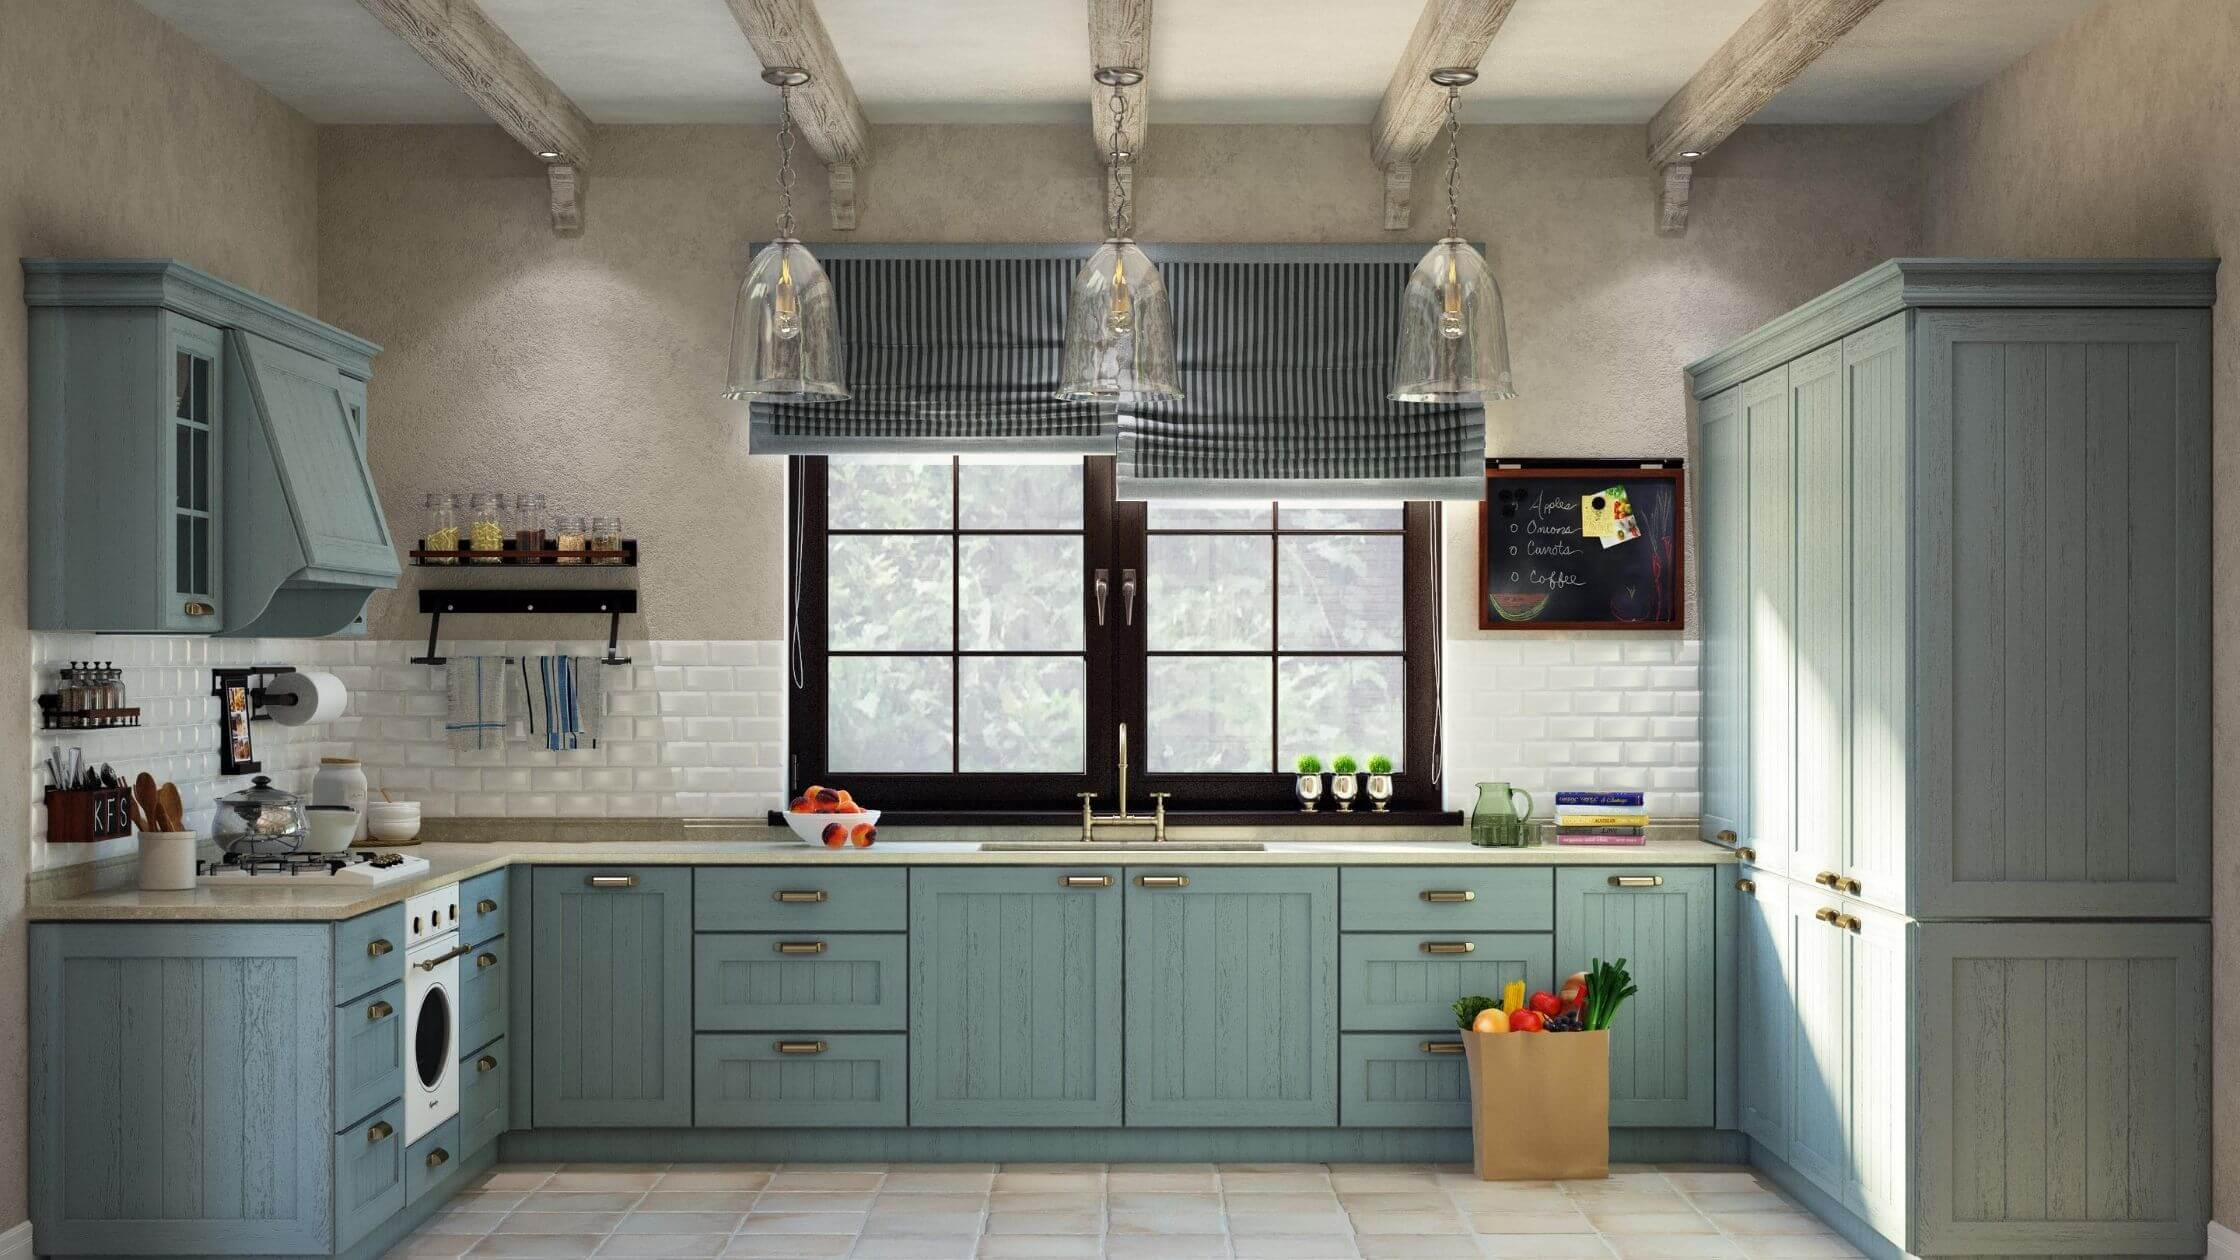 Minimize the cost of kitchen renovation